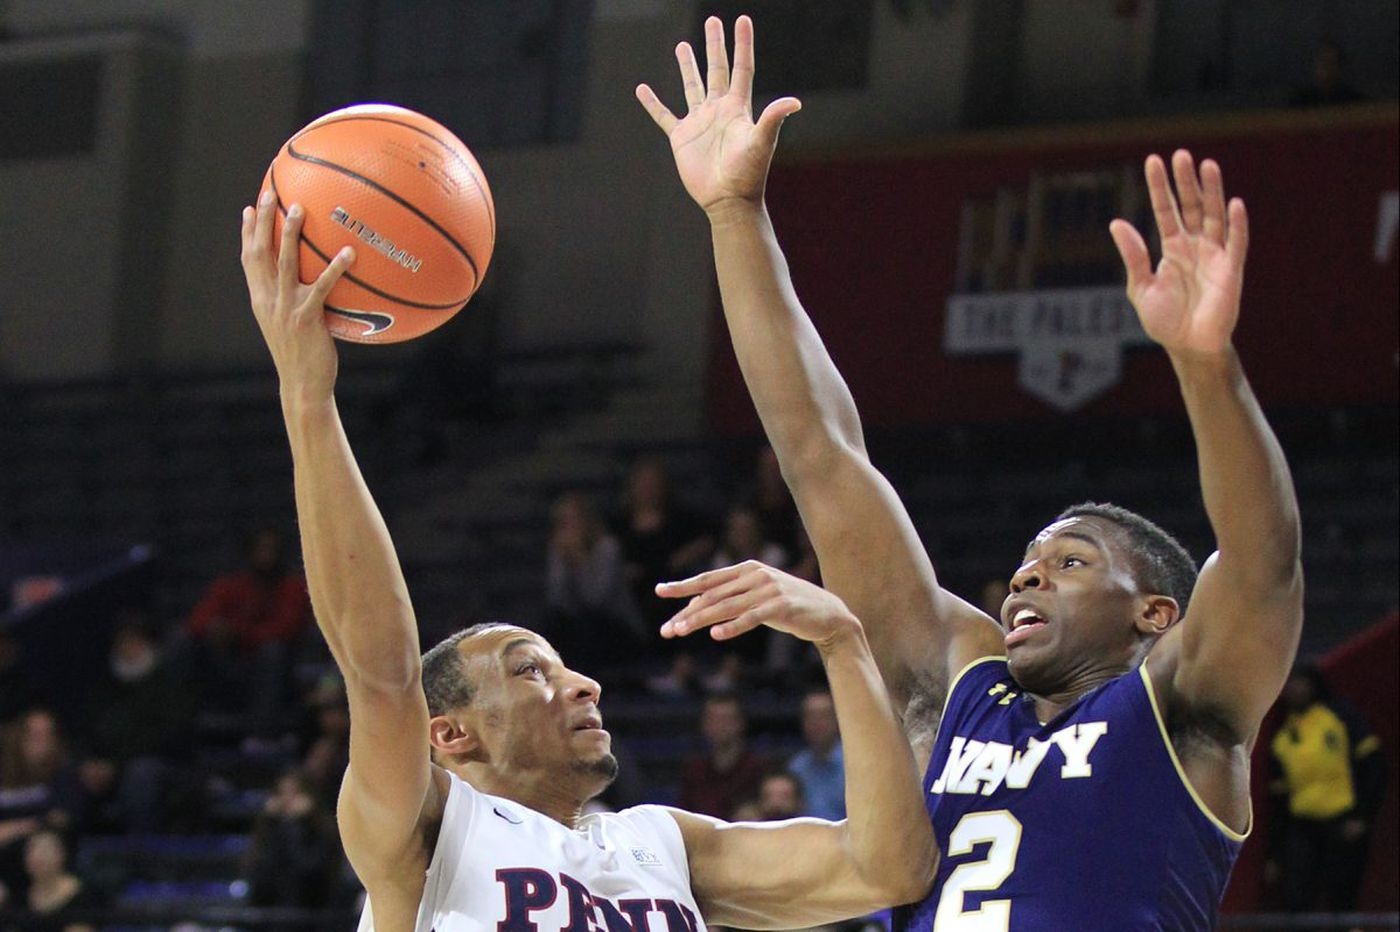 Penn basketball convincingly defeats Navy for first win